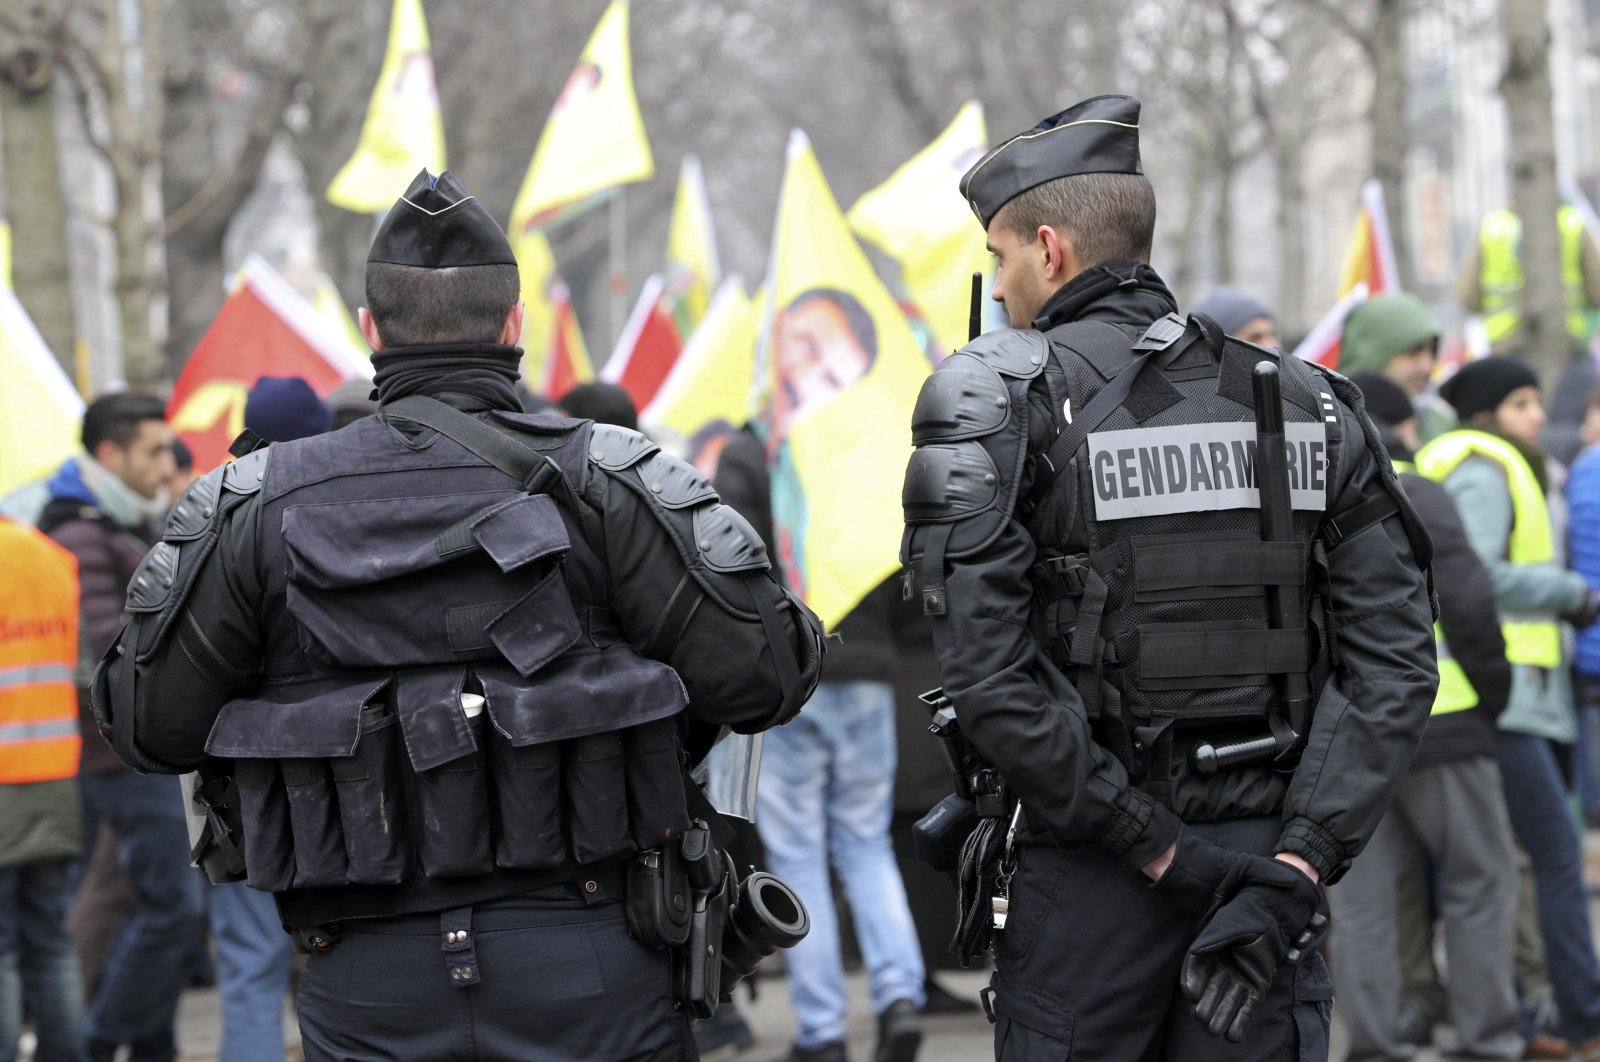 French gendarmes stand guard during a demonstration in support of jailed PKK terror group leader Abdullah Öcalan in Strasbourg, France, Feb. 11, 2017.  (REUTERS/Jean-Marc Loos)